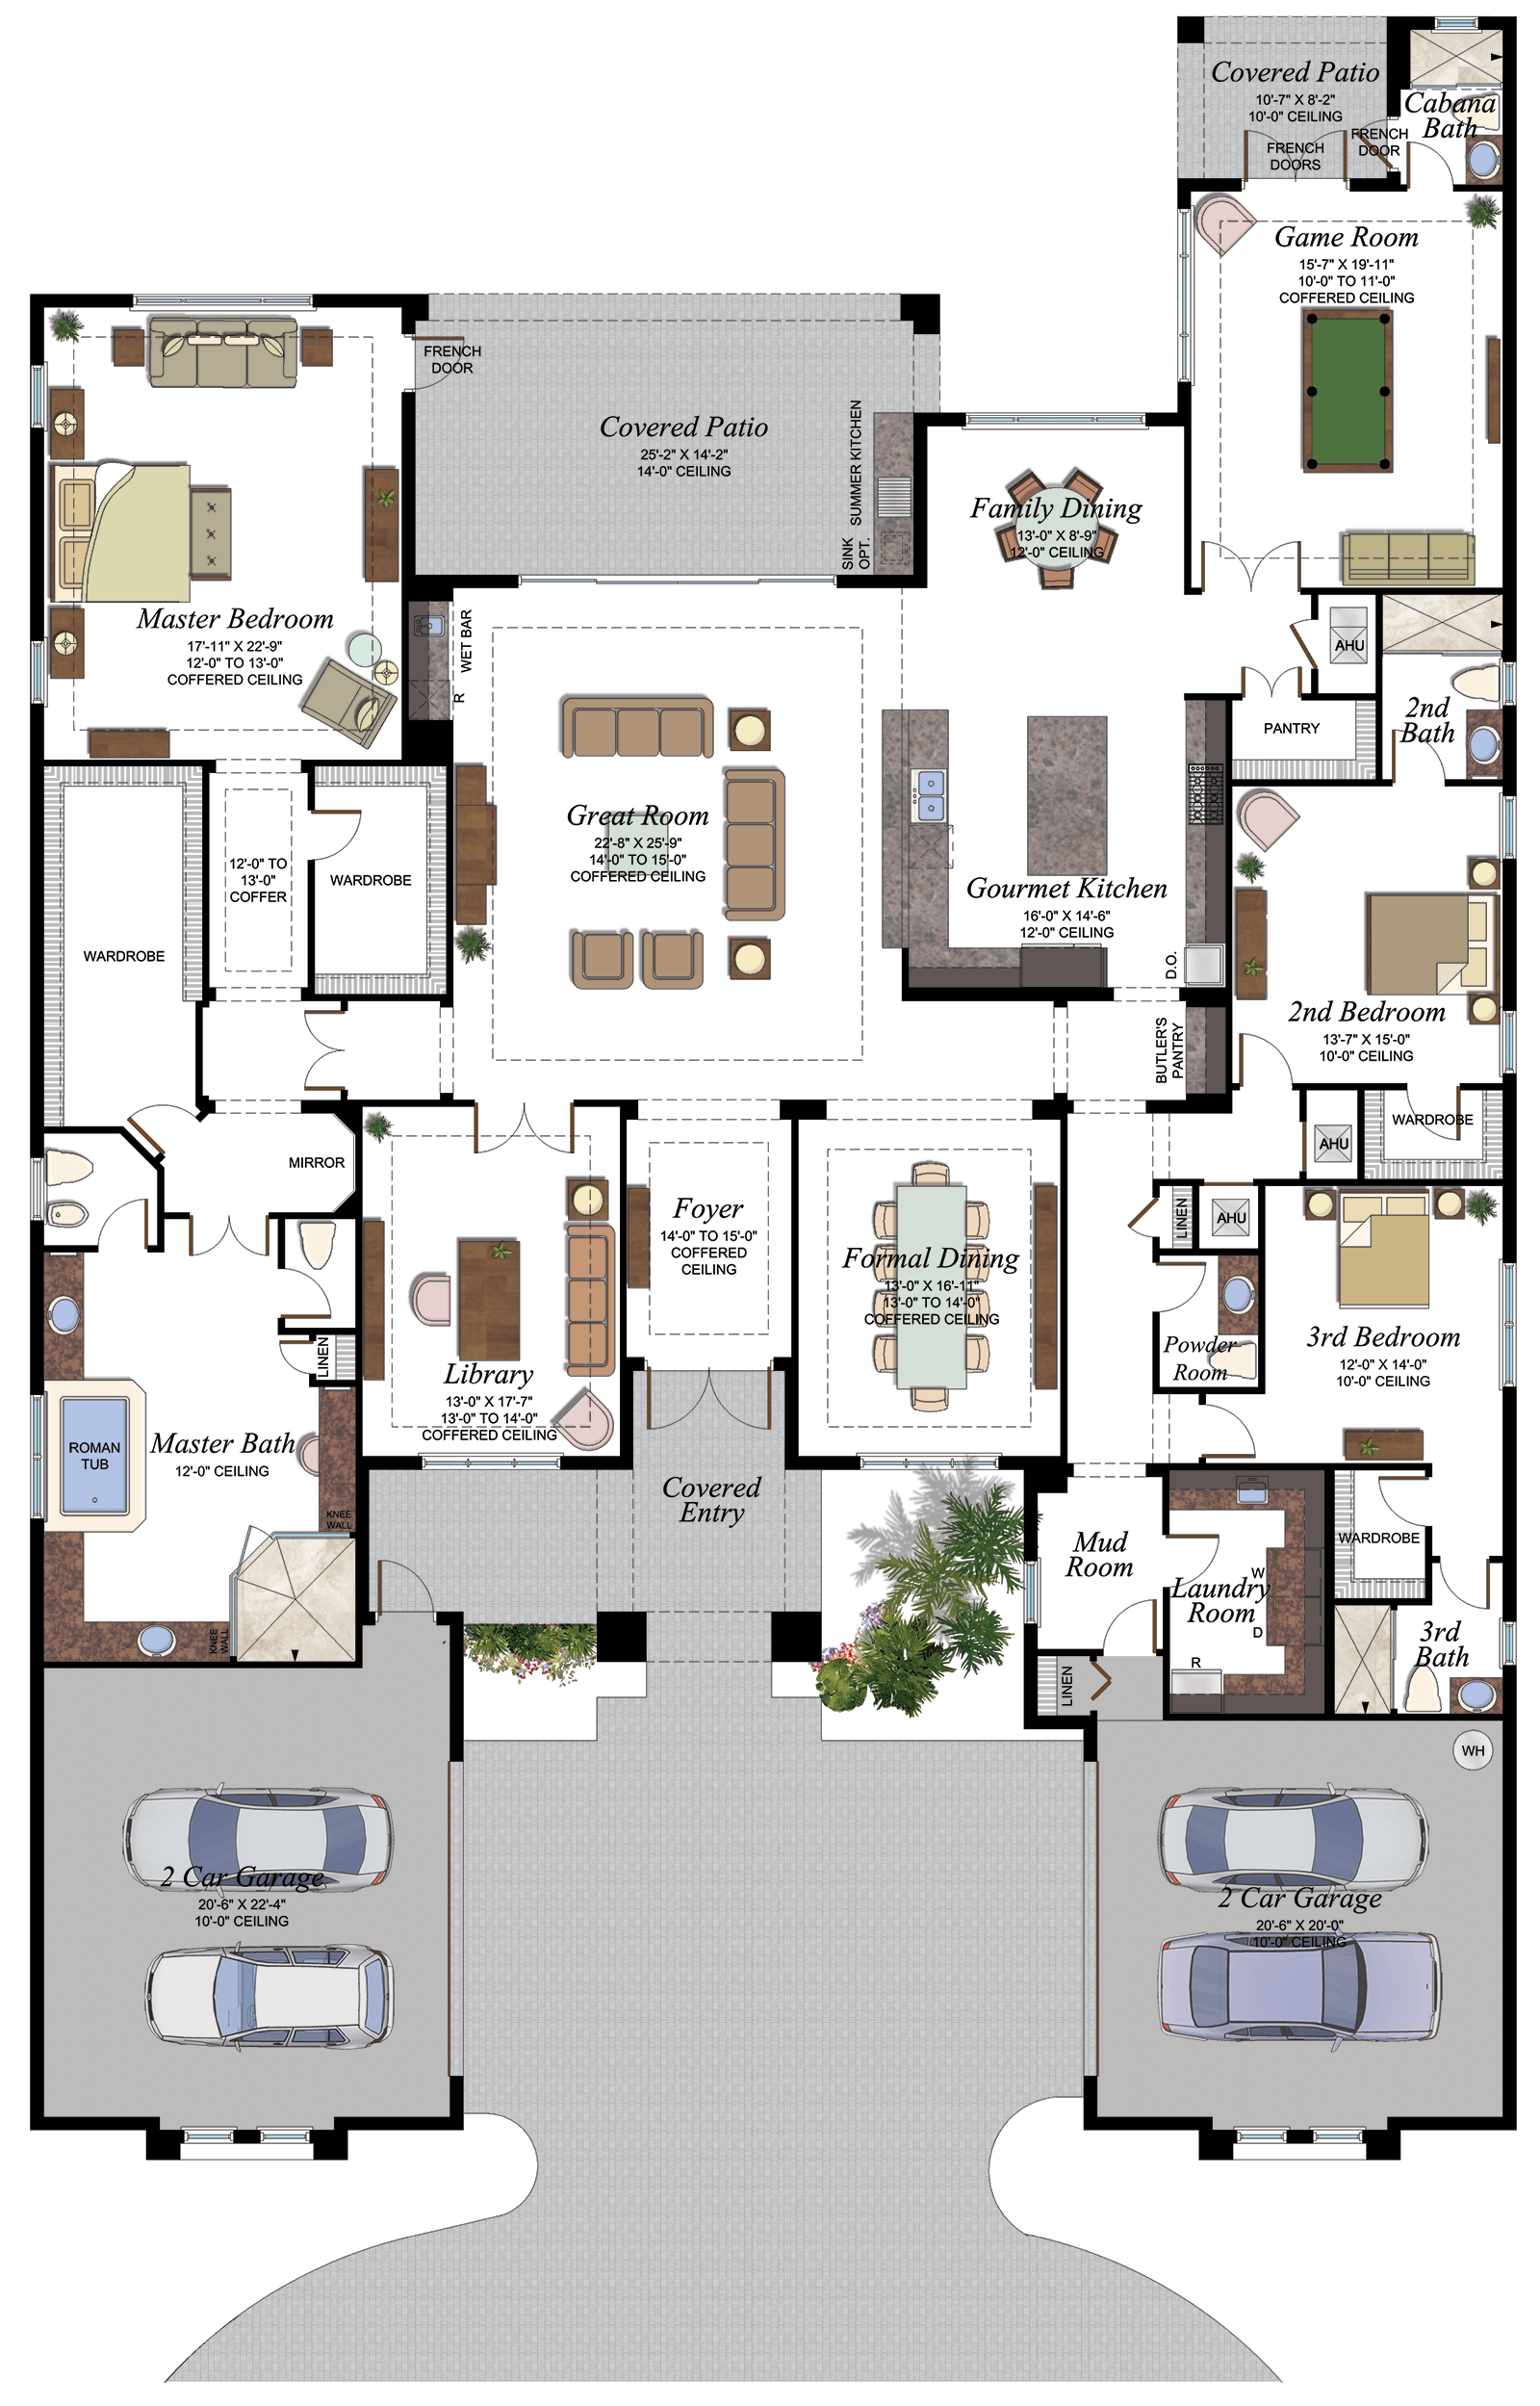 GL Homes | Hotel plans in 2019 | Dream house plans, Home ... on luxury mediterranean dining room, luxury kitchens, apartment plans, bathroom design plans, 7 to 8 bedroom plans, luxury hotels, luxury mansions, luxury real estate, duplex condominium plans, luxury bedroom, luxury swimming pools, modular mansion plans, luxury home, floor plans, designing home plans, residence design plans, luxury villas, landscape plans, luxury master bathrooms, luxury banquets,